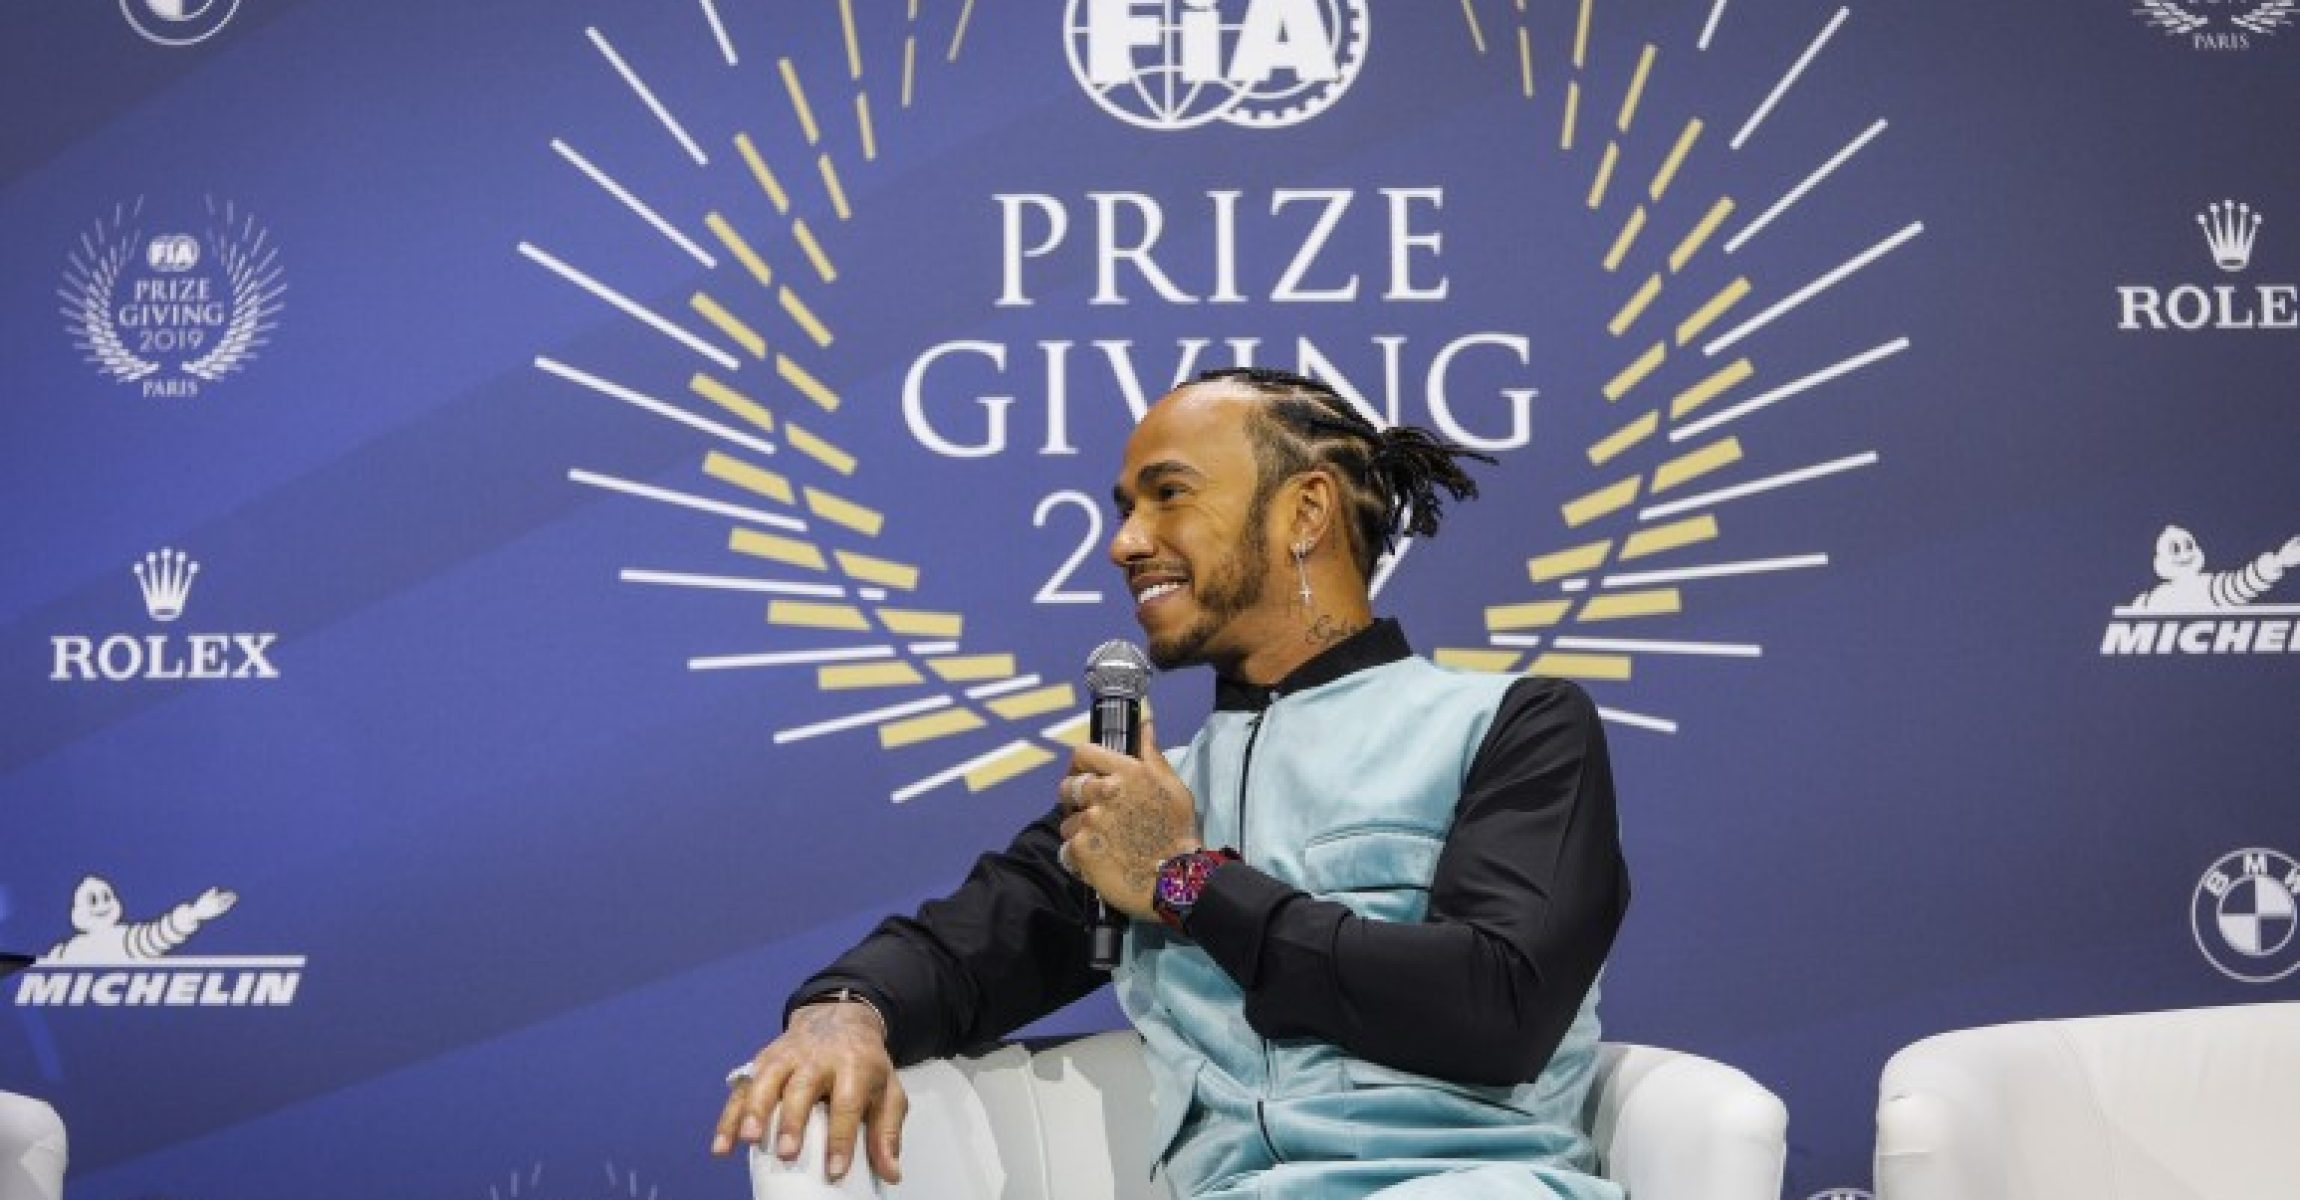 Lewis Hamilton, Paris, FIA Prize Giving Gala 2019